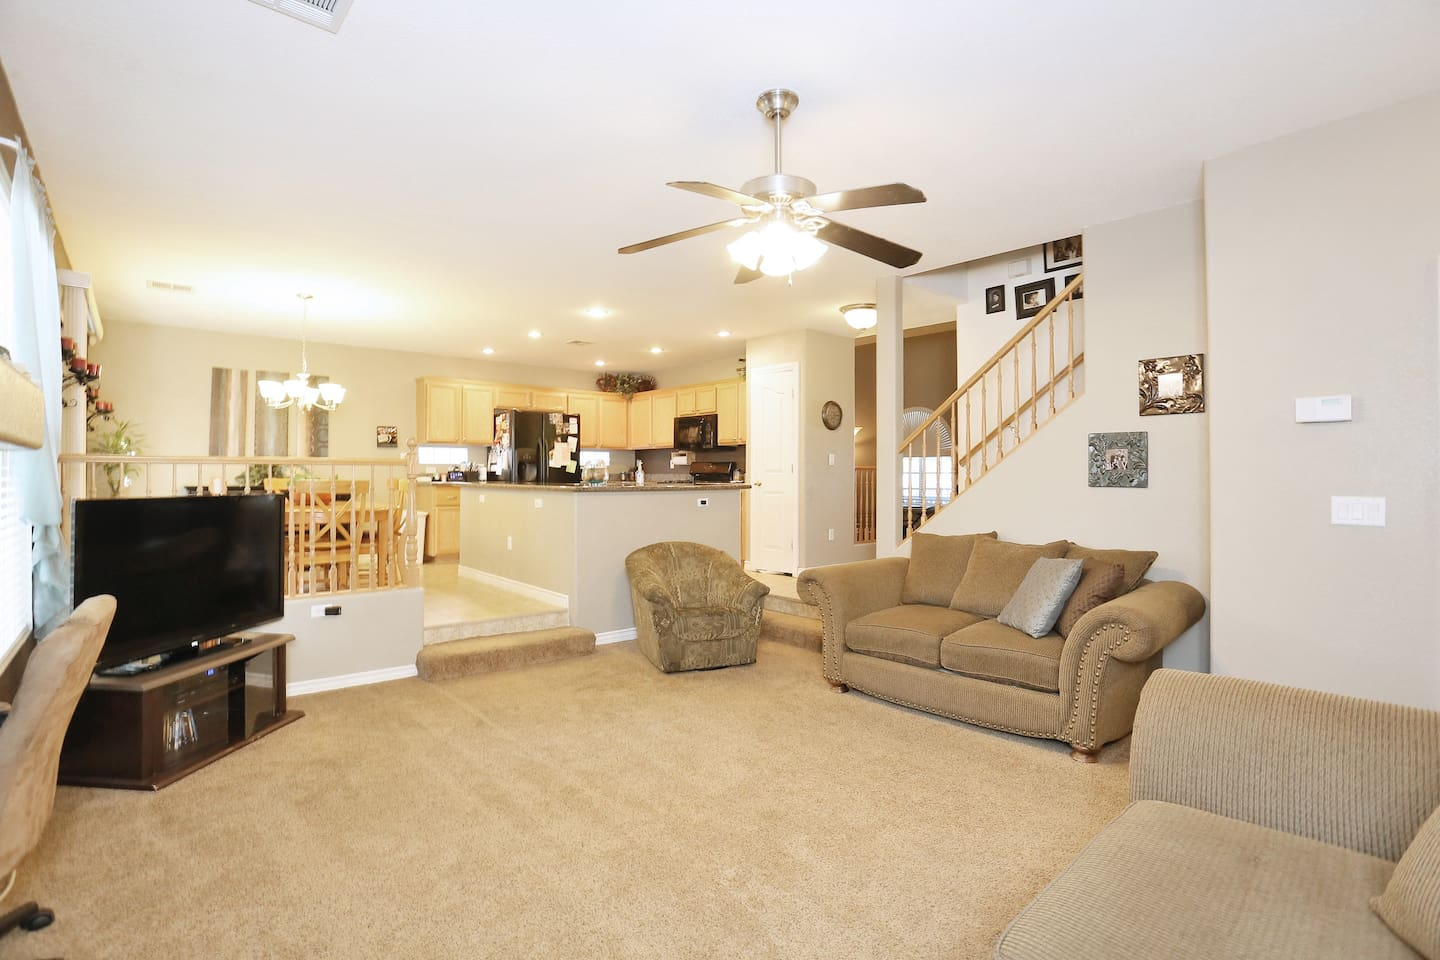 Combined family room, kitchen, and dining area.